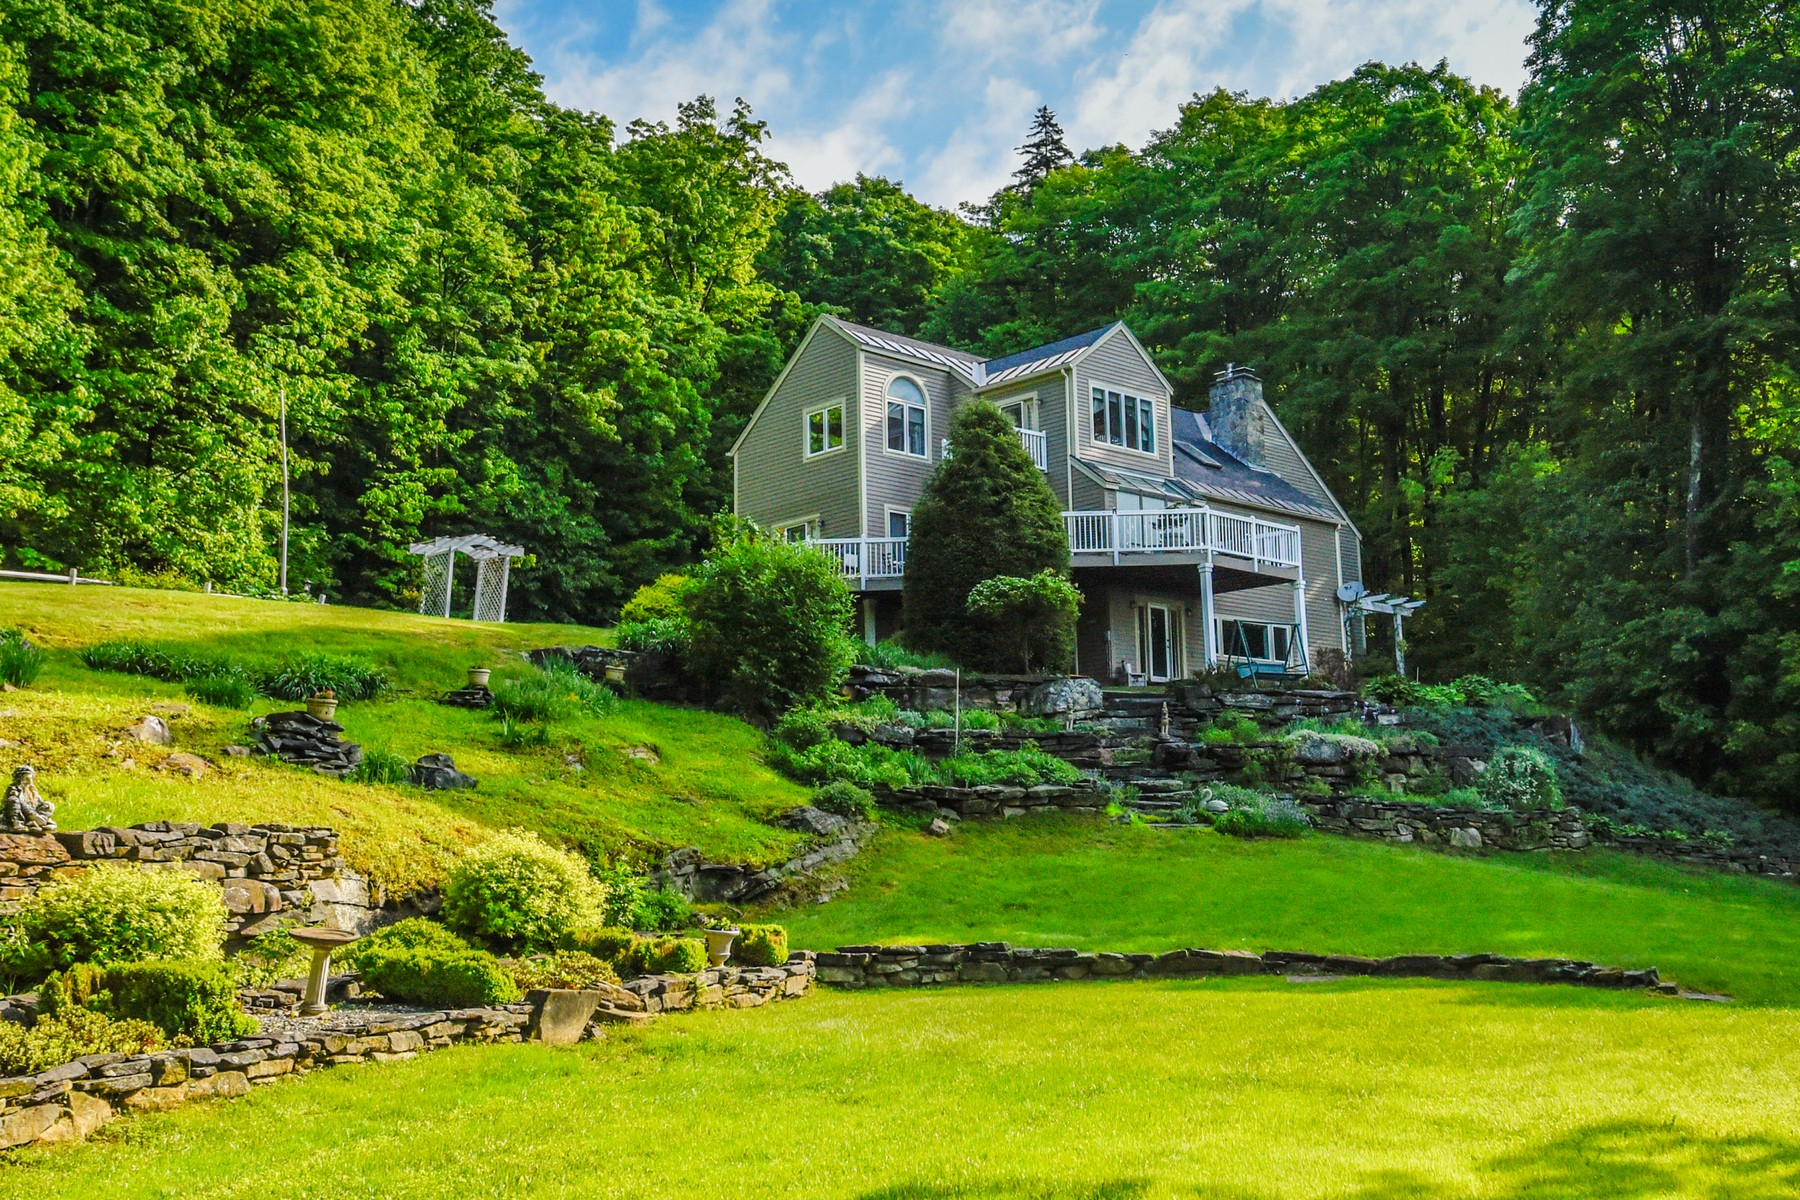 Single Family Homes for Sale at Waterfront & Privacy - 20+ Acres 268 North Ryder Pond Rd Whitingham, Vermont 05361 United States